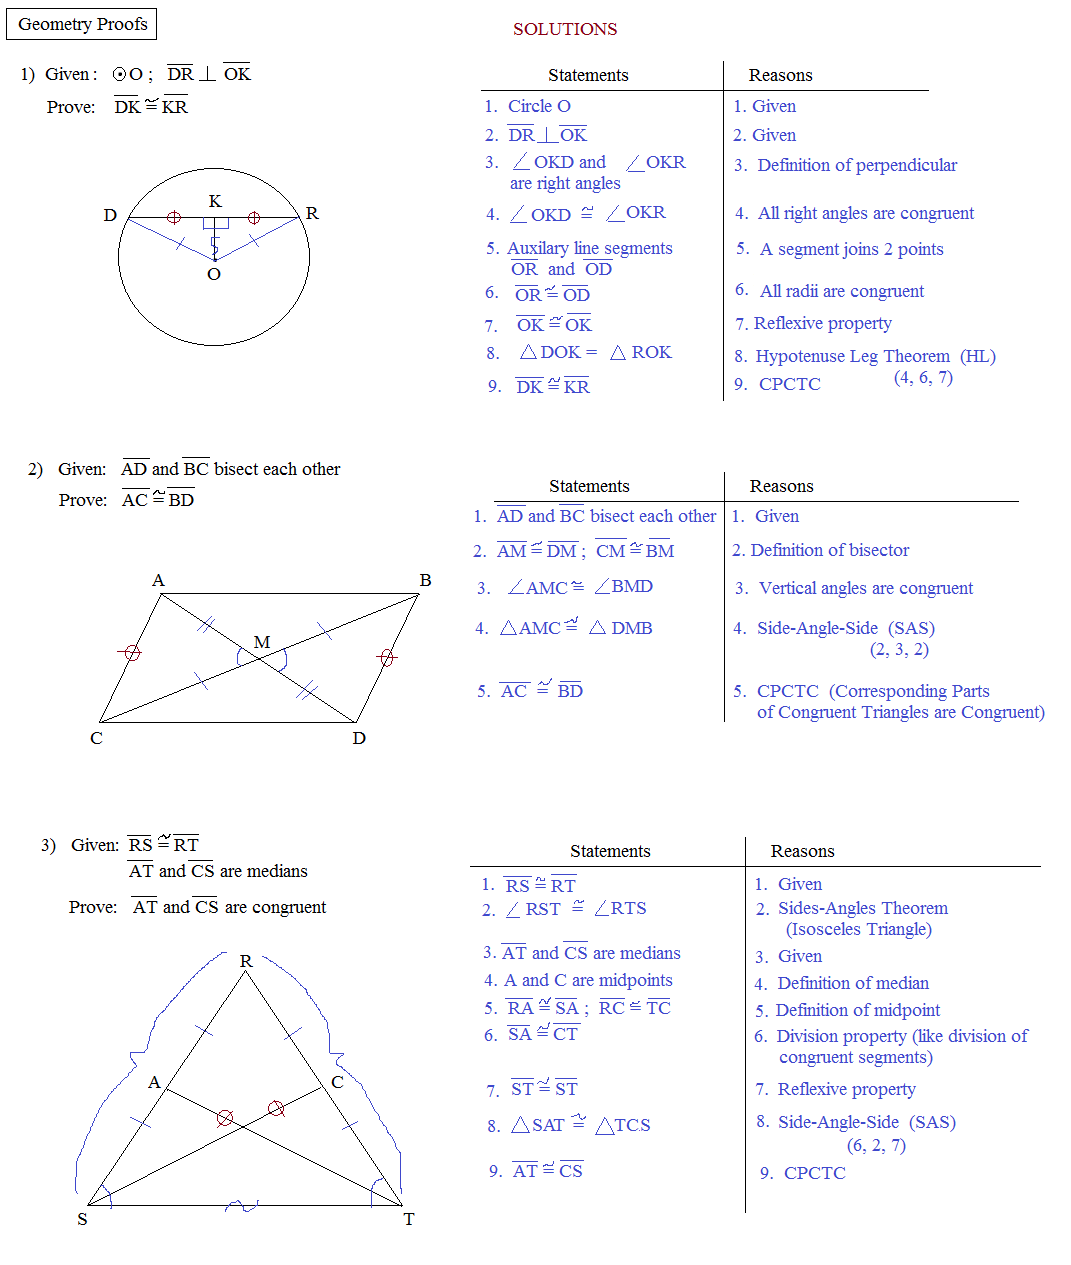 Worksheets Answers To Geometry Worksheets geometry proof worksheets with answers free library amazing to print or download